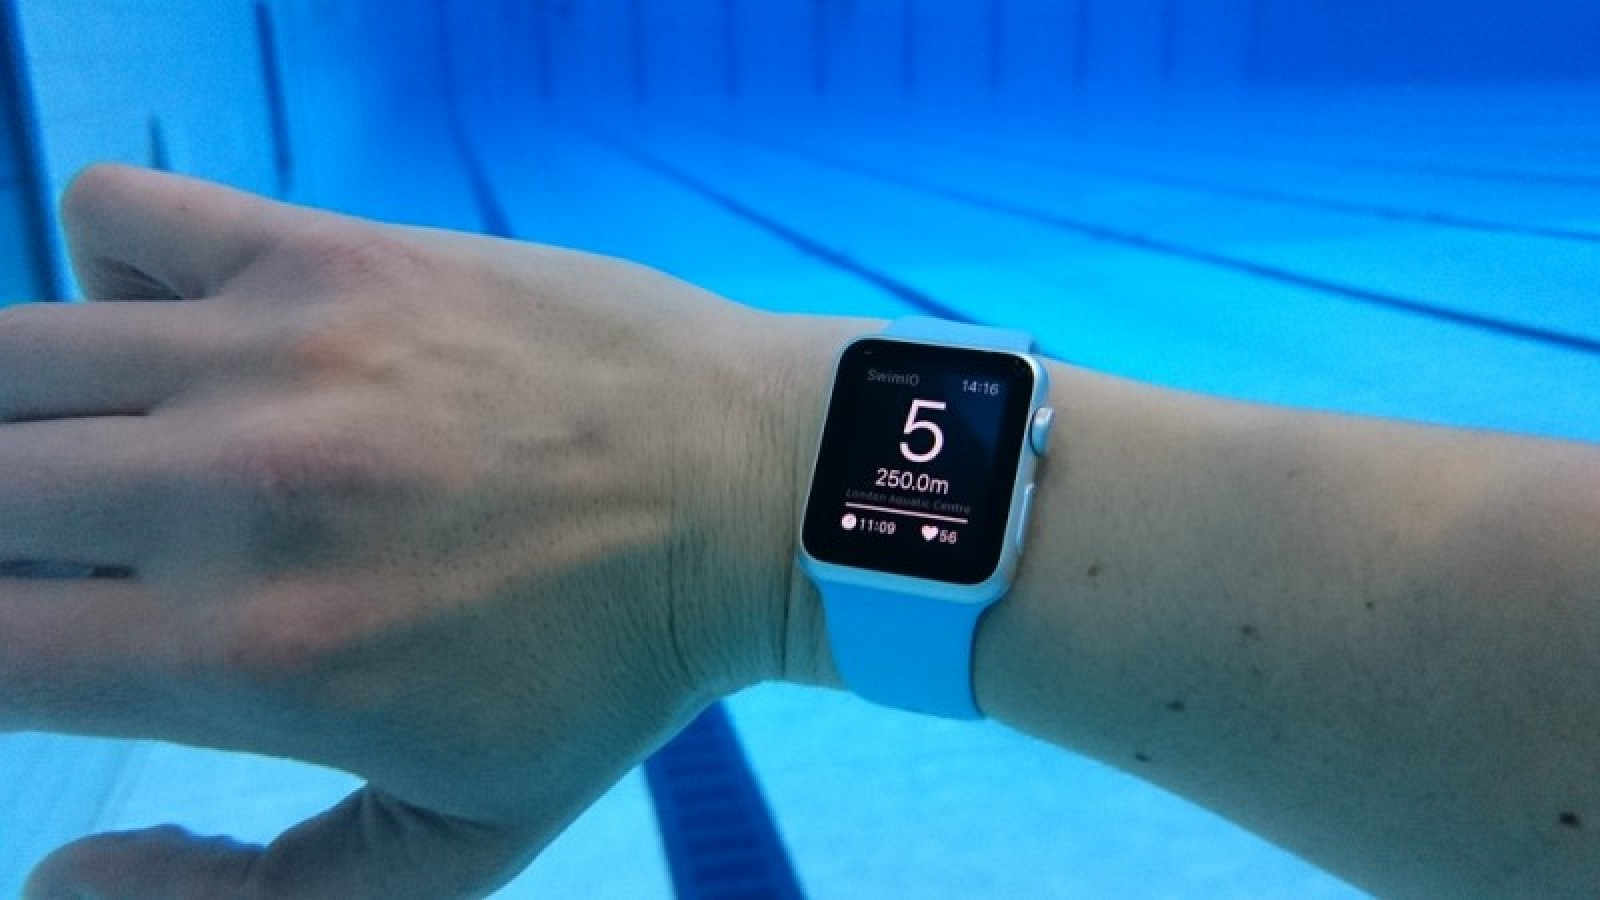 39 world 39 s first swim app 39 on apple watch put to the test in. Black Bedroom Furniture Sets. Home Design Ideas